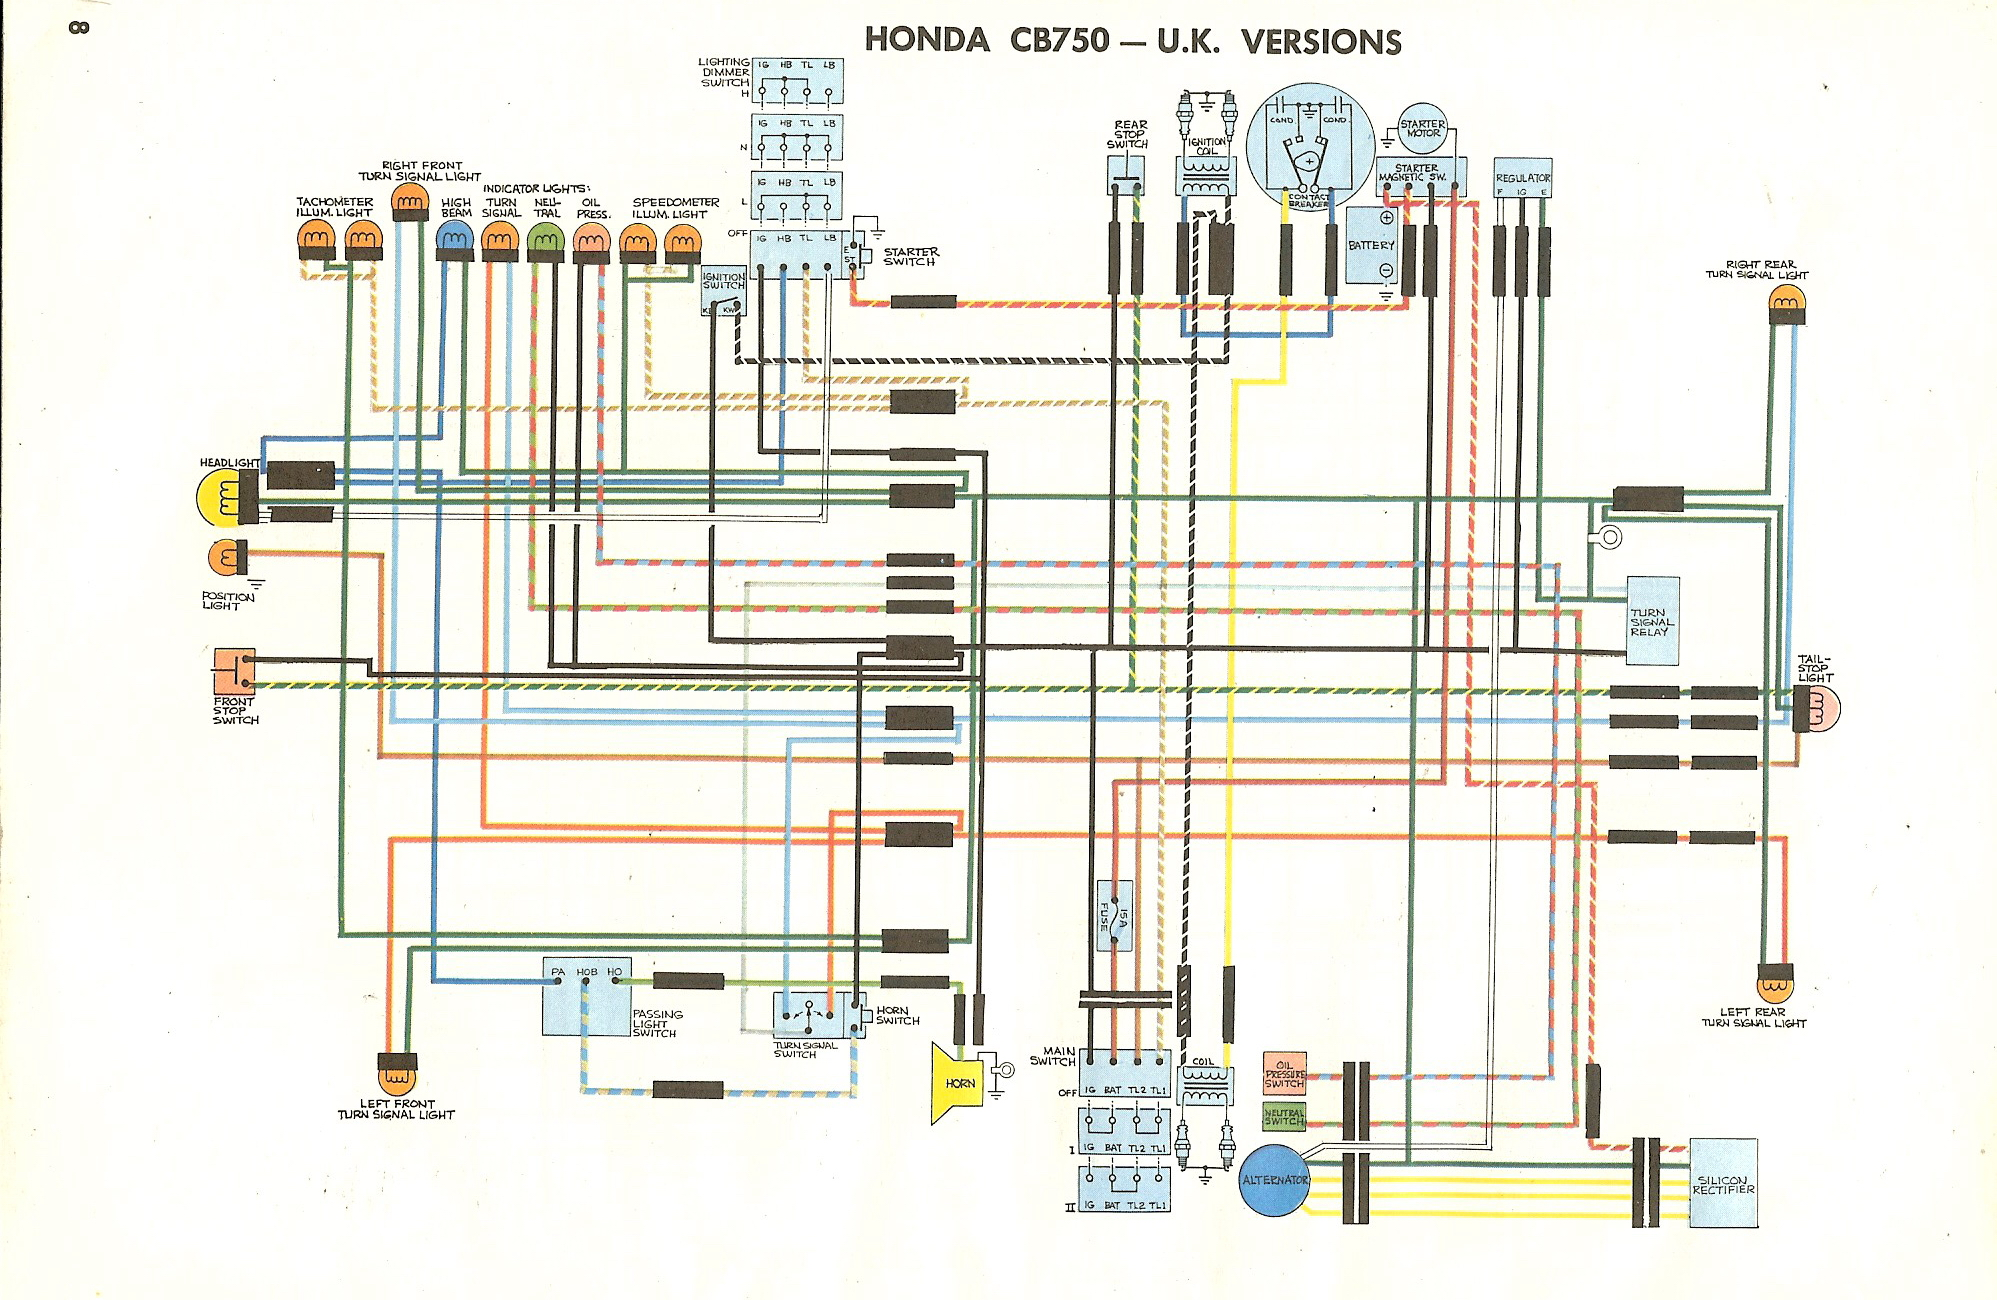 WD750UK cb750k wiring diagram motorcycle ignition wiring diagram \u2022 wiring 1974 honda cb550 wiring diagram at virtualis.co